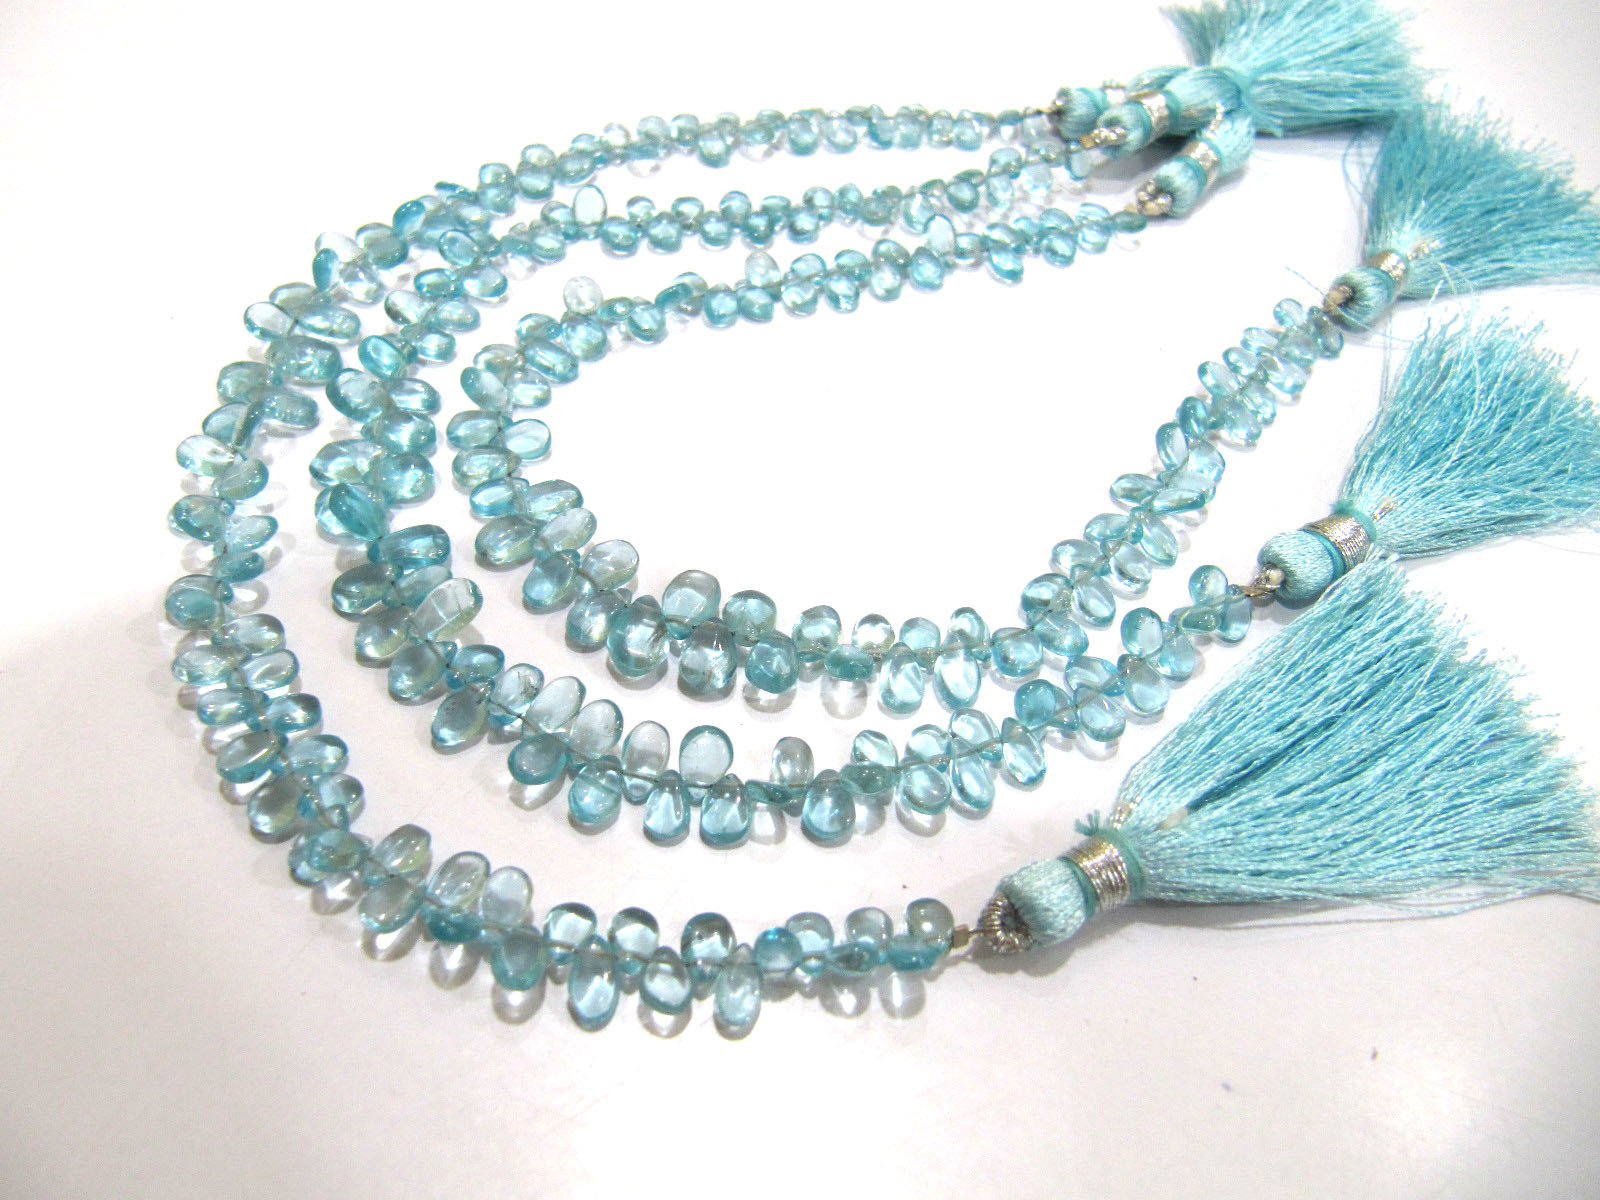 AAA Quality Natural Blue Apatite Smooth Tear Drop Bead